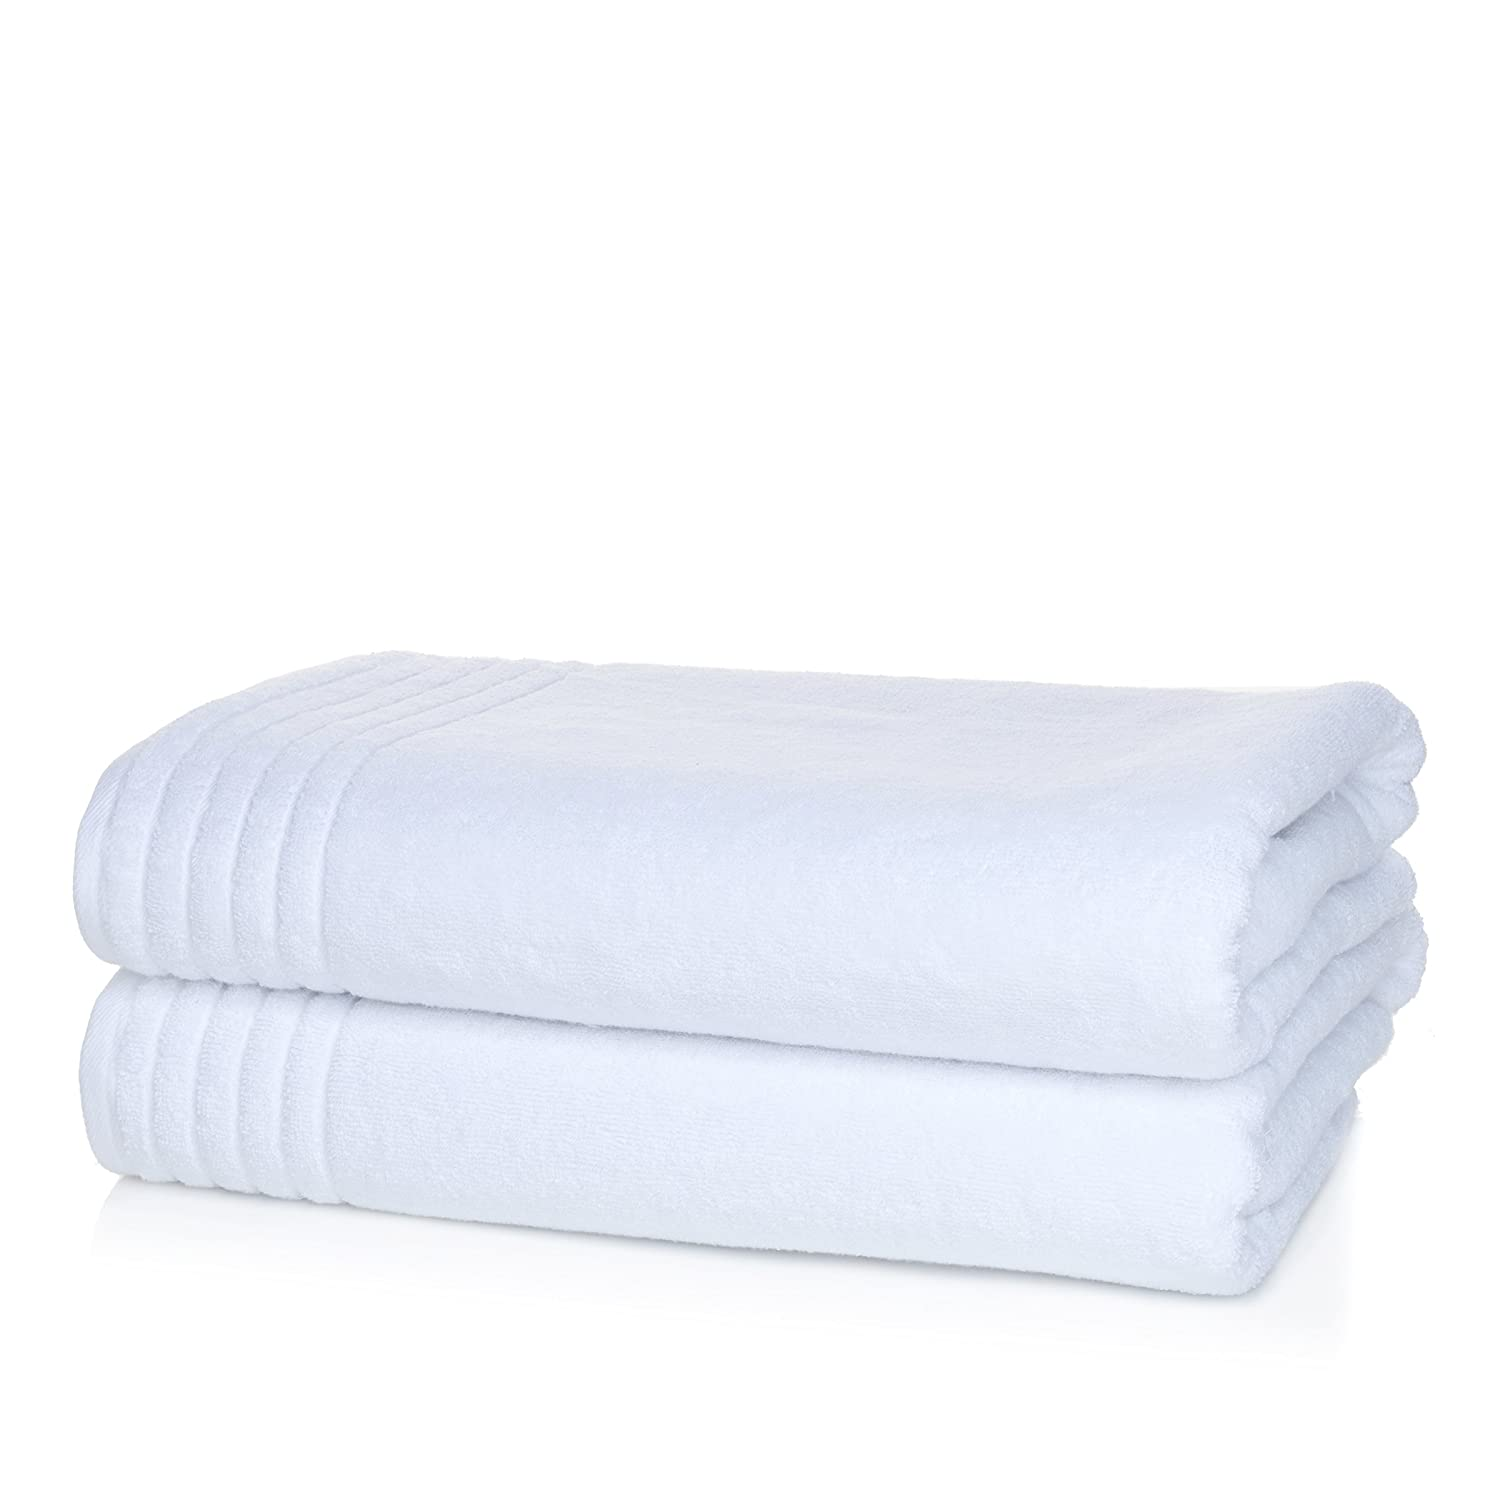 Joy Mangano Supreme Stretch Sets Towel Soft Mint